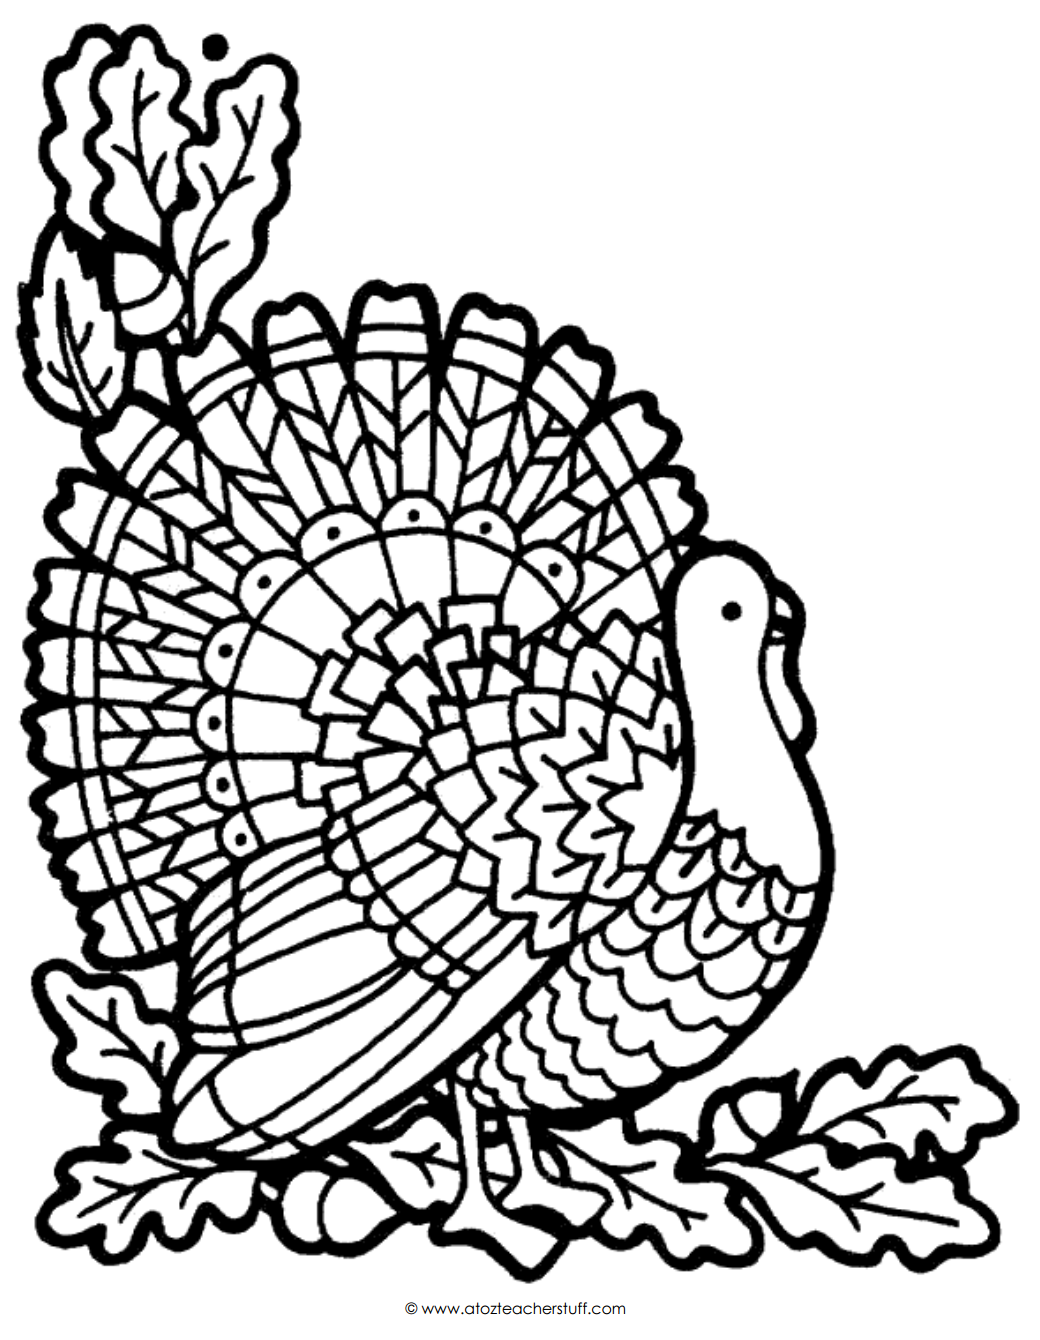 Coloring pages for older students az coloring pages for Free printable coloring pages for older students